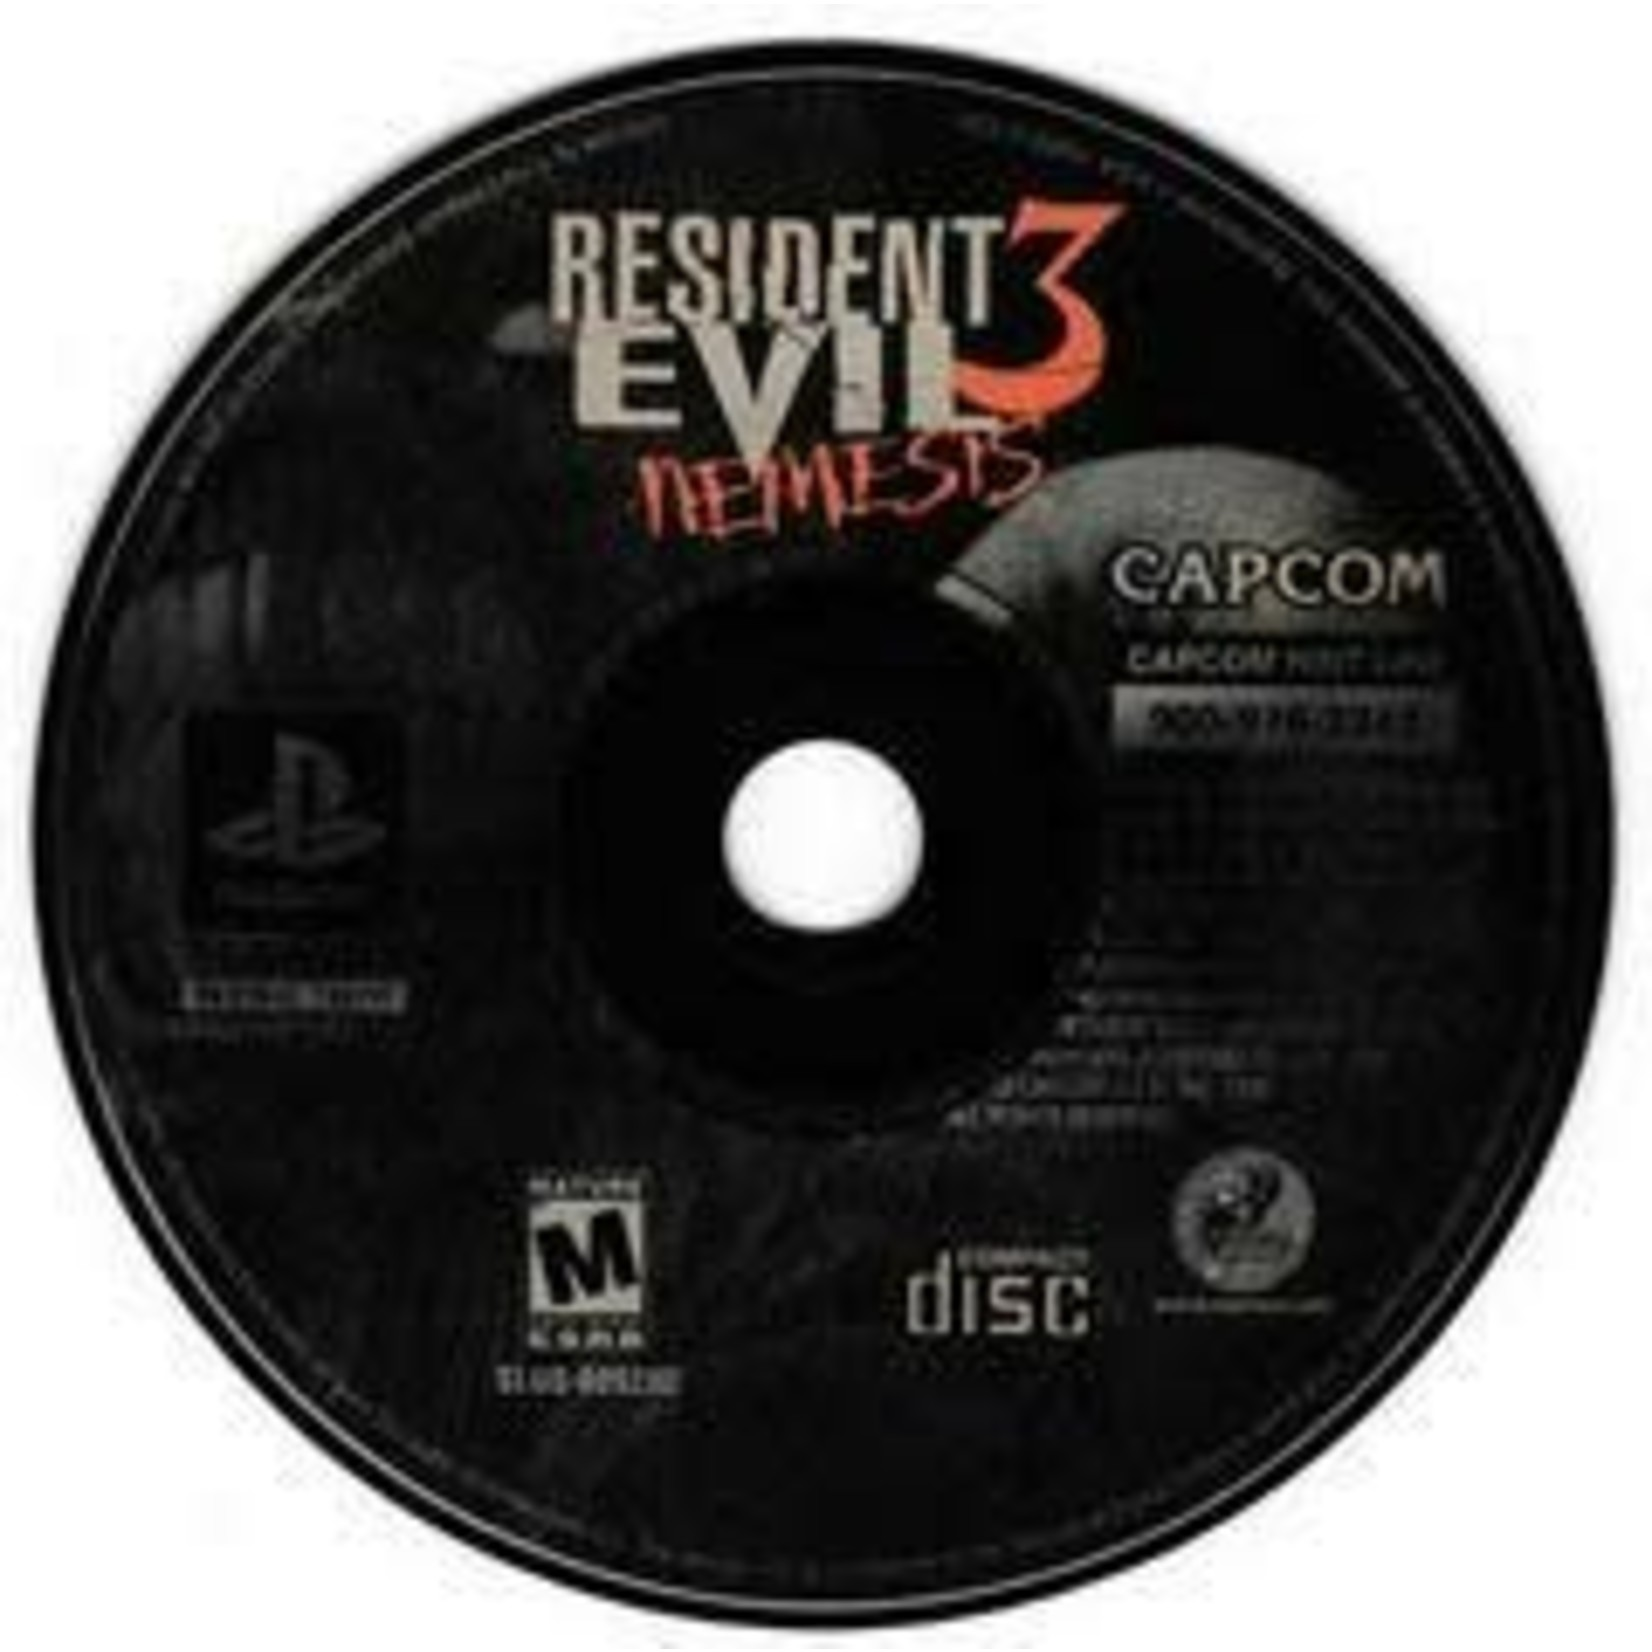 PS1U-Resident Evil 3 (Disc & Manual Only)